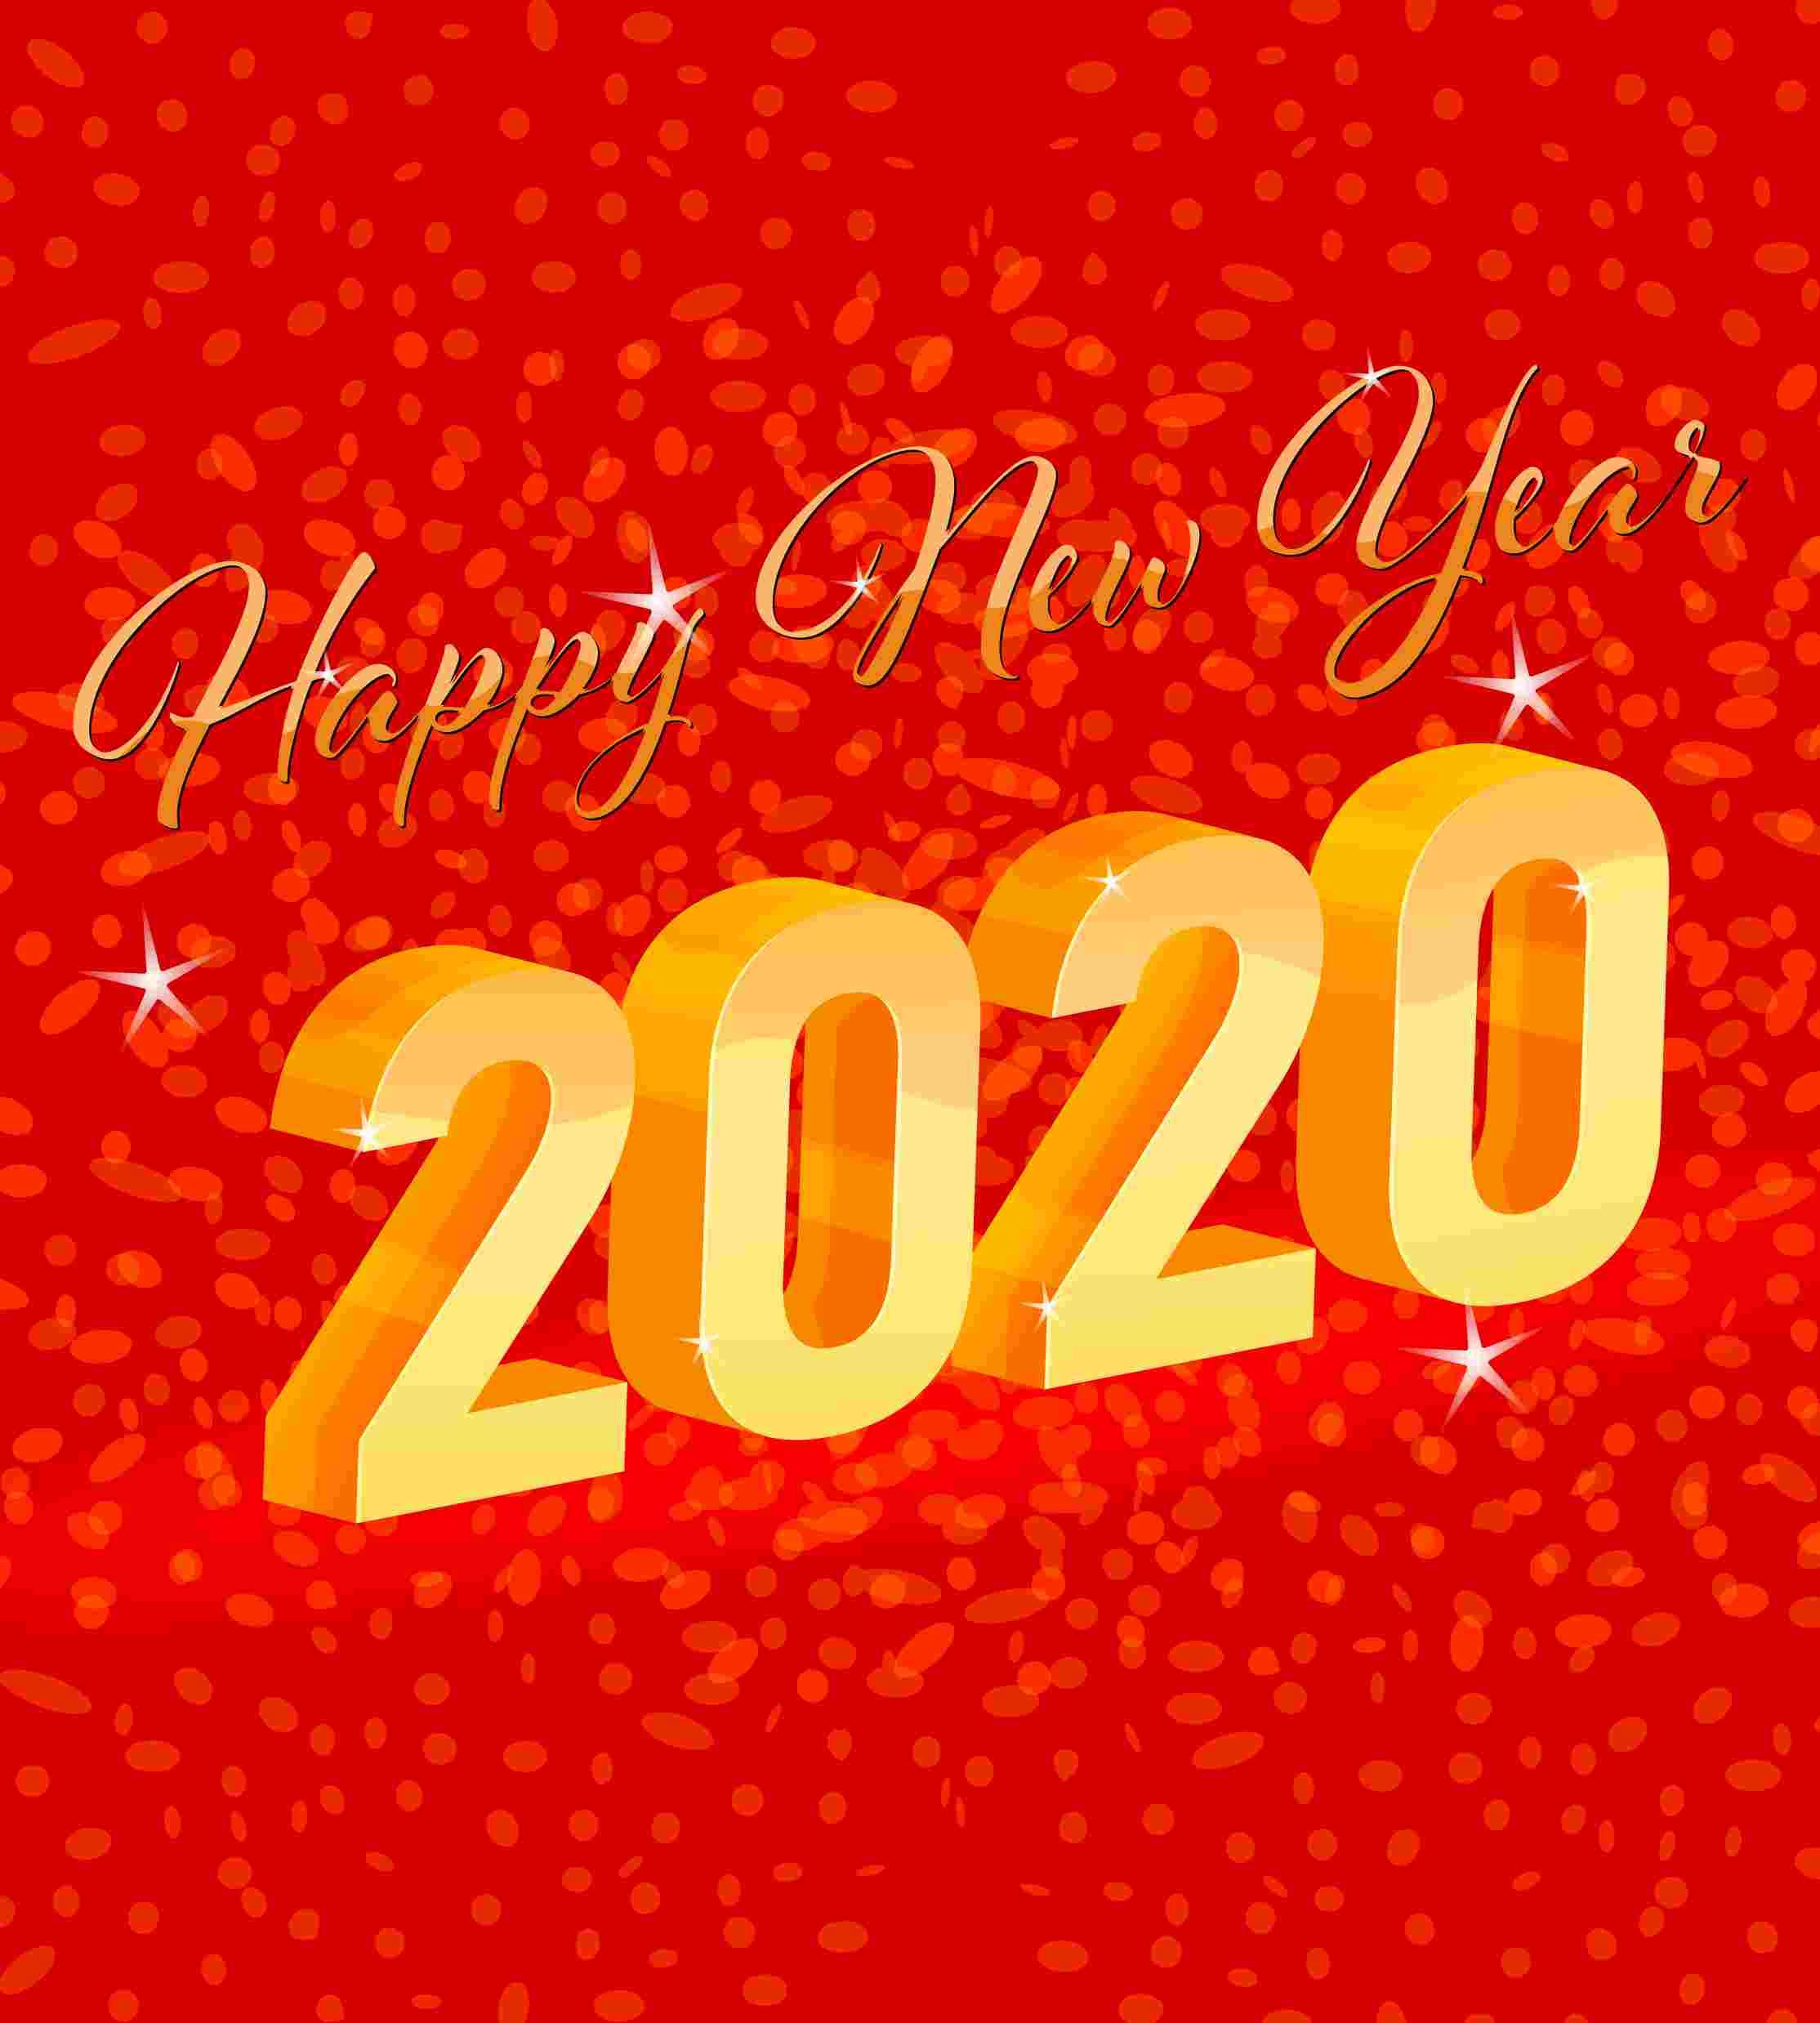 Pin On Happy New Year Images 2021 Wallpapers Hd Pictures New year 2021 orange hd background